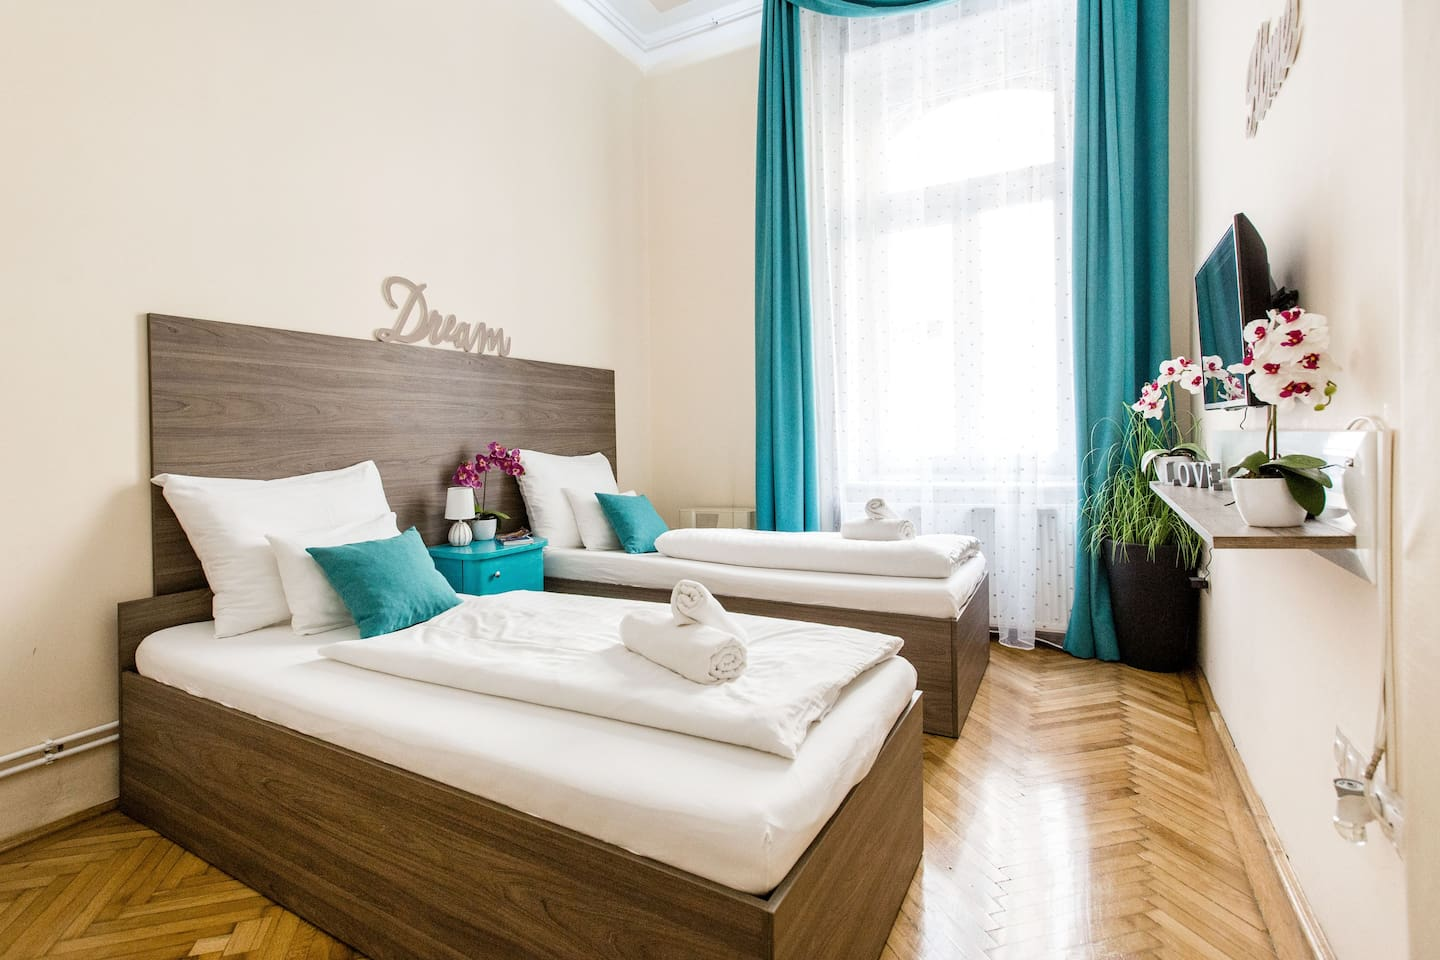 1rst Apartment: Upon request in advance we can prepare the beds in the bedroom separately to have 2 single beds (90x200 cm each)